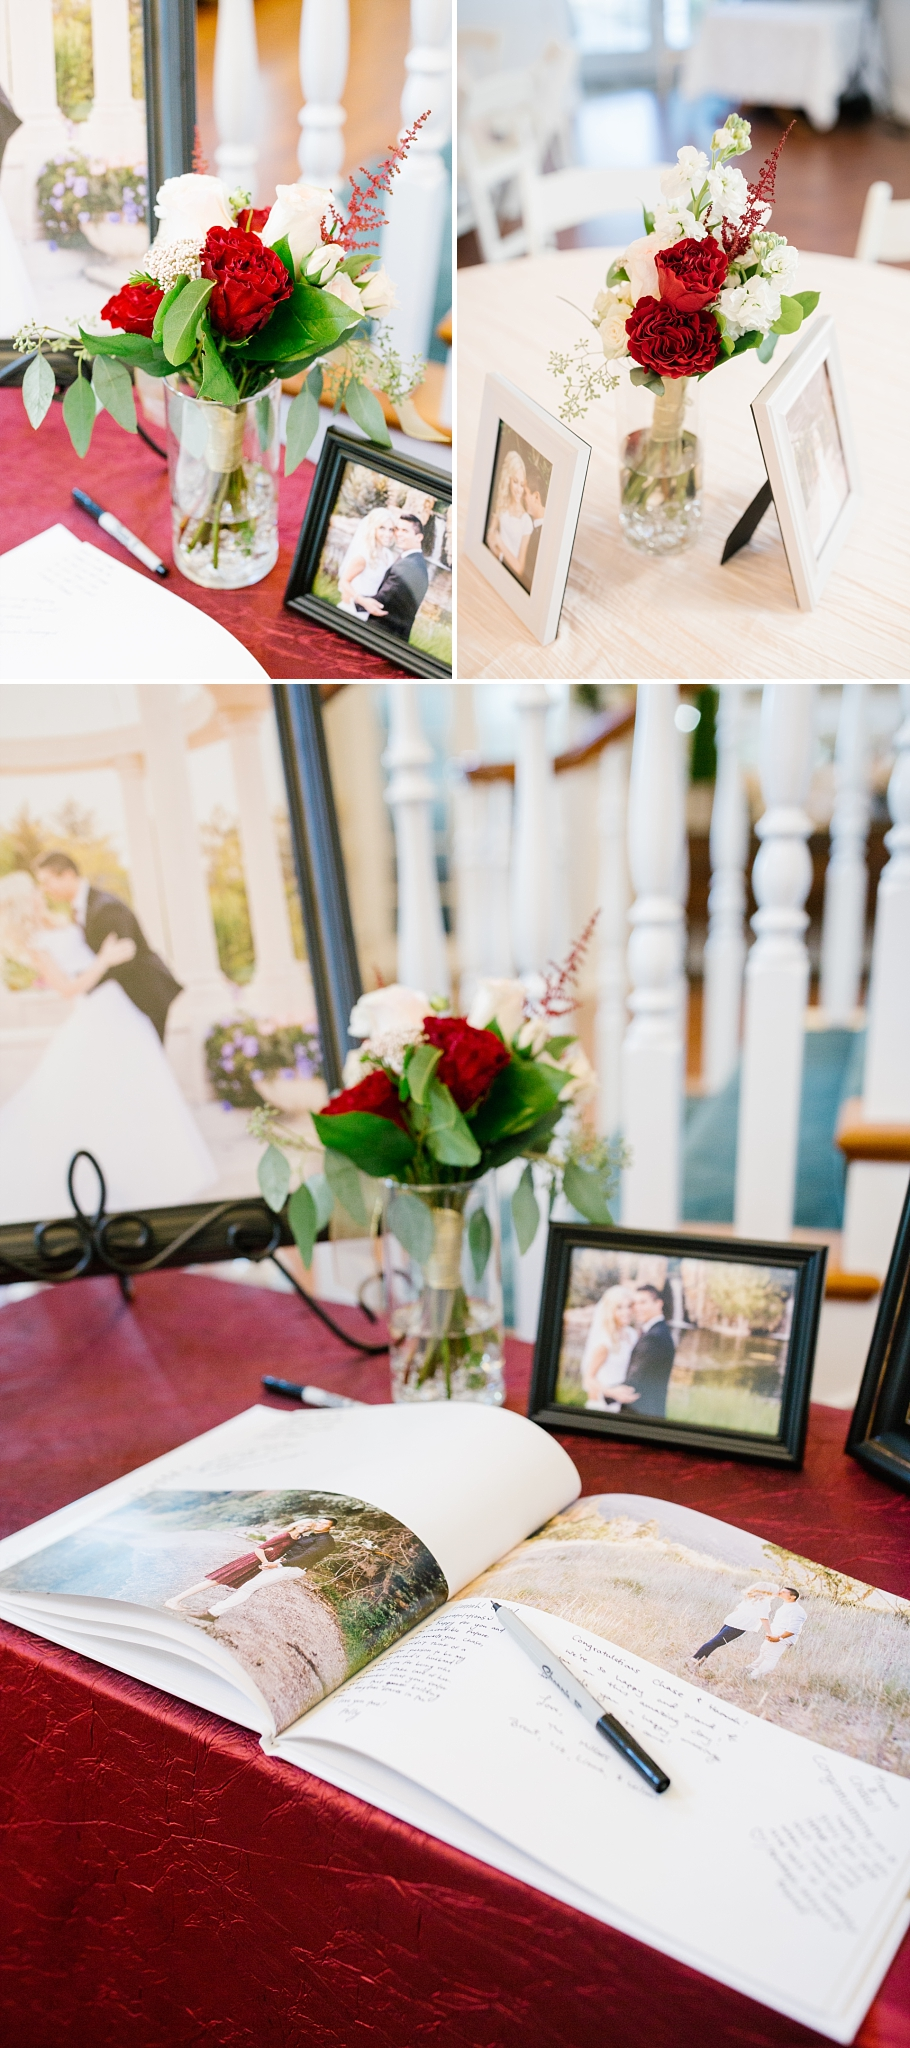 HannahChaseWedding-352_Lizzie-B-Imagery-Utah-Wedding-Photographer-Bridal-Photography-Payson-Utah-Temple-Clarion-Gardens-Catering-and-Events-Center.jpg